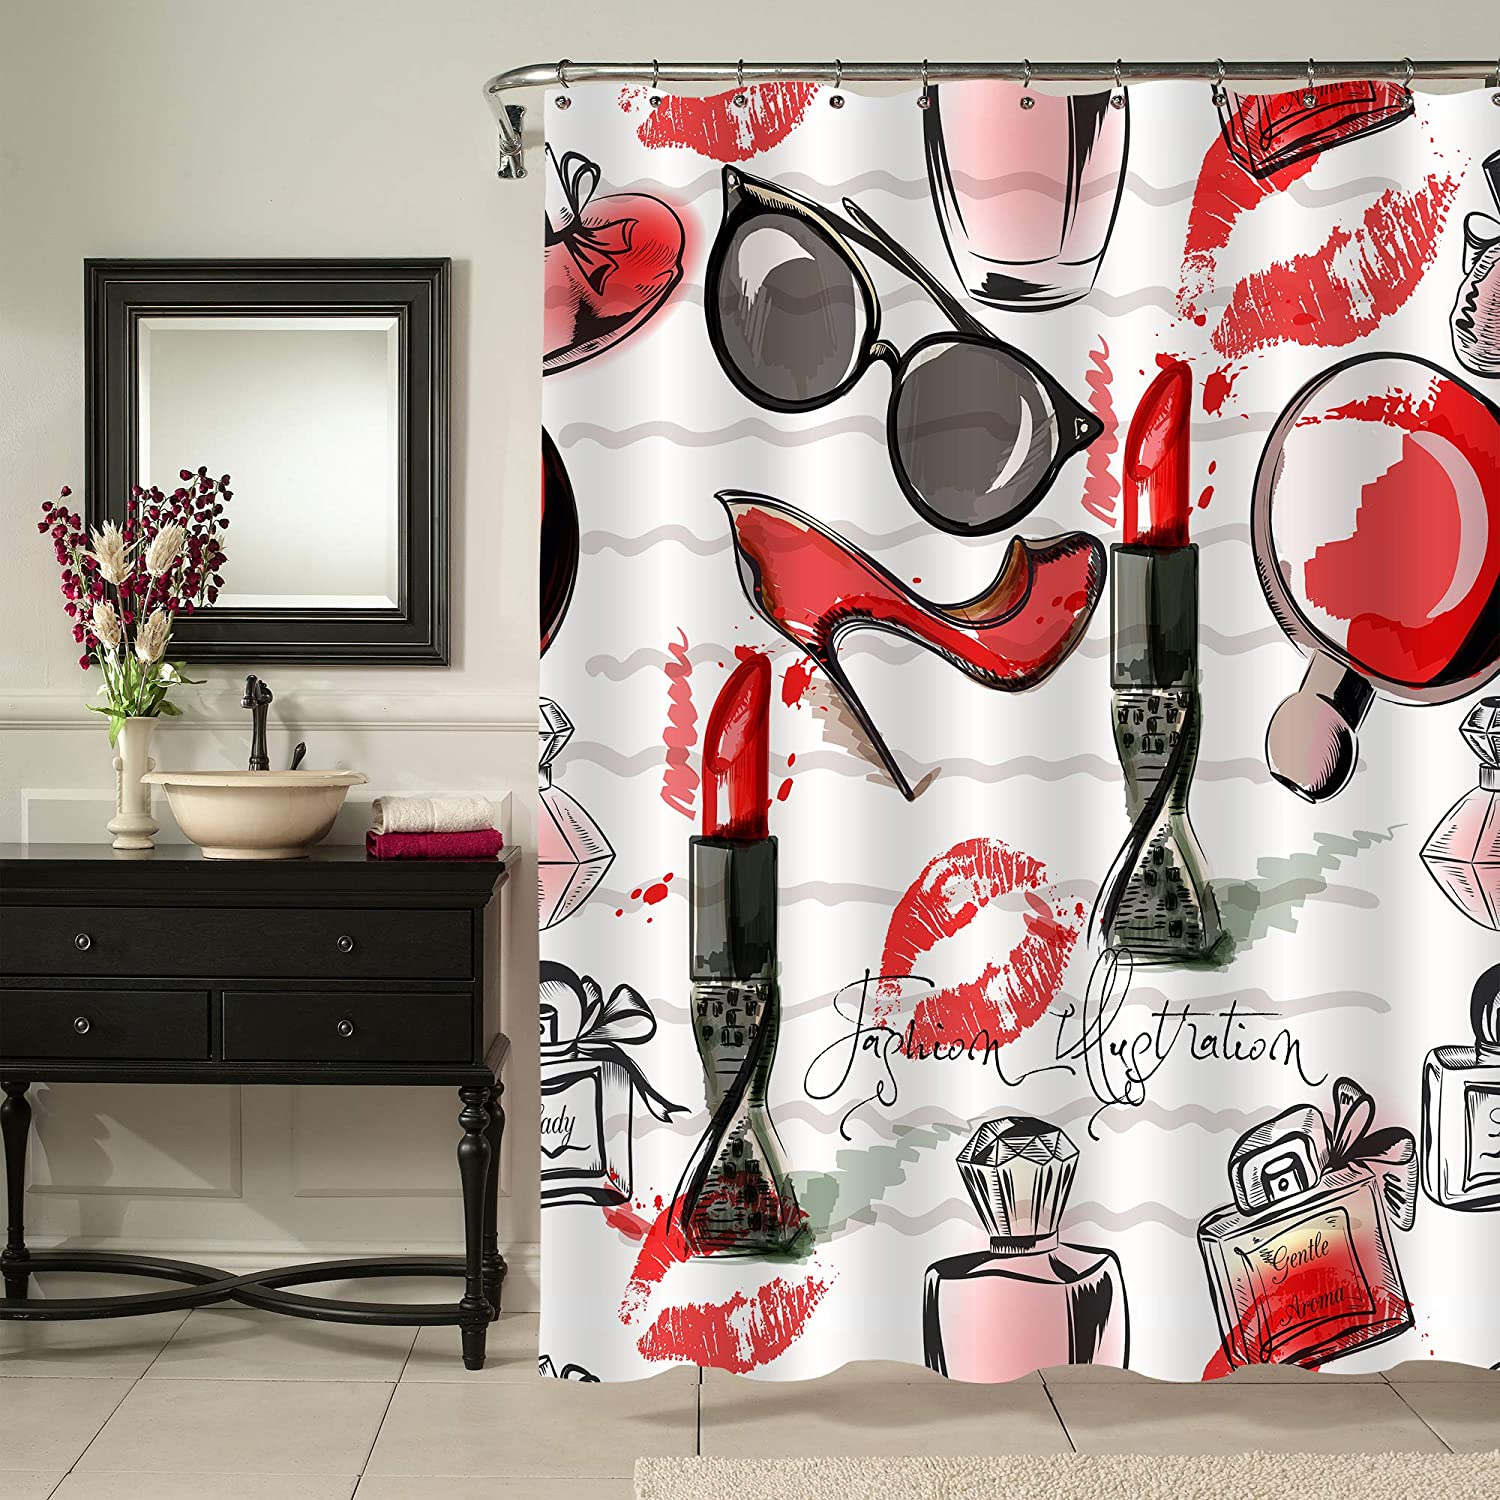 """MitoVilla Fashion Makeup Shower Curtain for Female Bathroom Decor, Cosmetic Lipstick Perfume Art Print Bathroom Accessories, Unusual Gifts for Women and Teen Girls, Red and Black, 72"""" W x 72"""" L"""